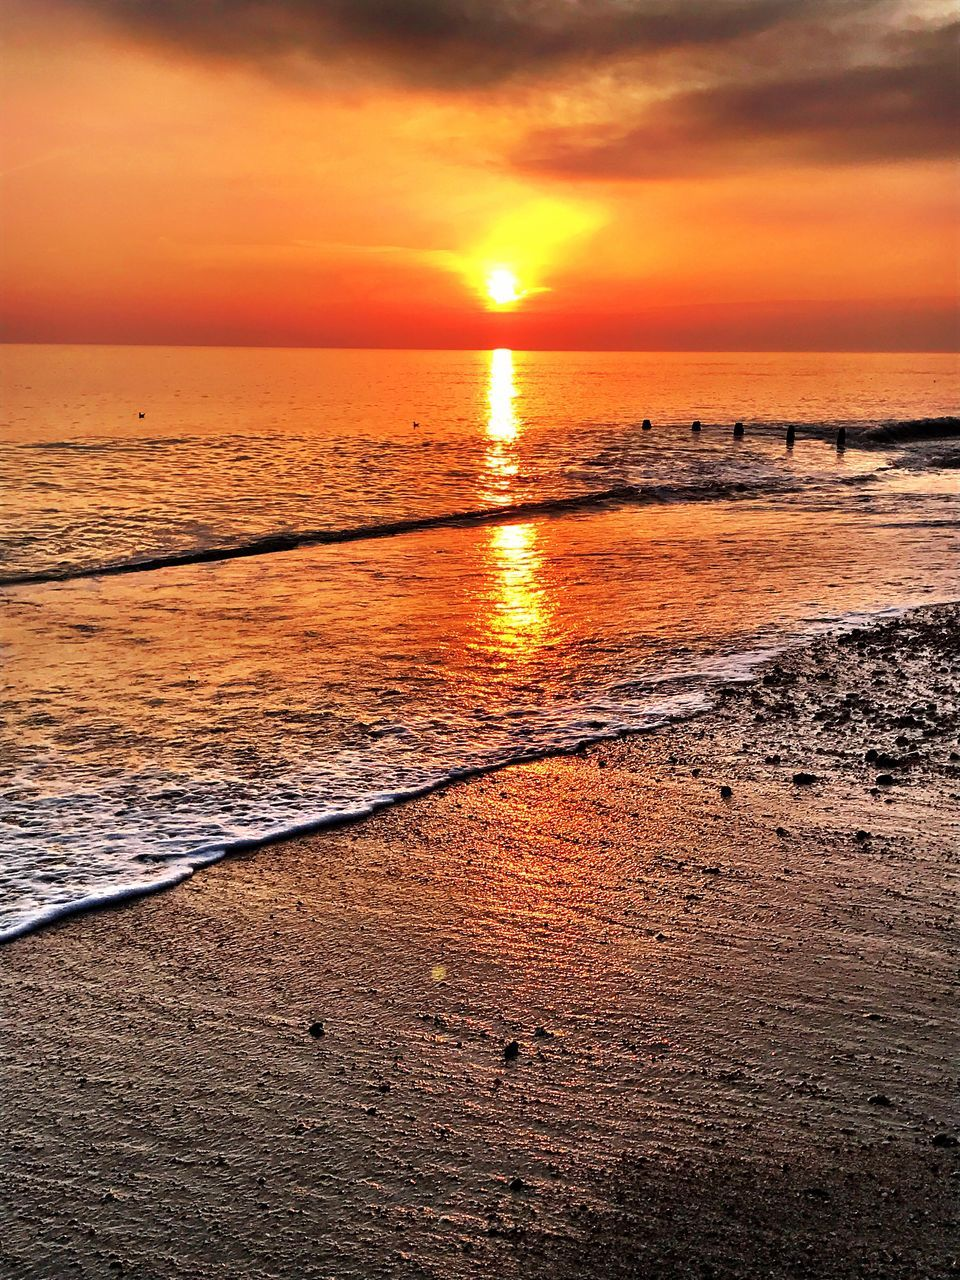 sunset, sea, beach, beauty in nature, scenics, orange color, water, nature, horizon over water, sun, tranquil scene, tranquility, sky, idyllic, sand, reflection, no people, outdoors, wave, sunlight, cloud - sky